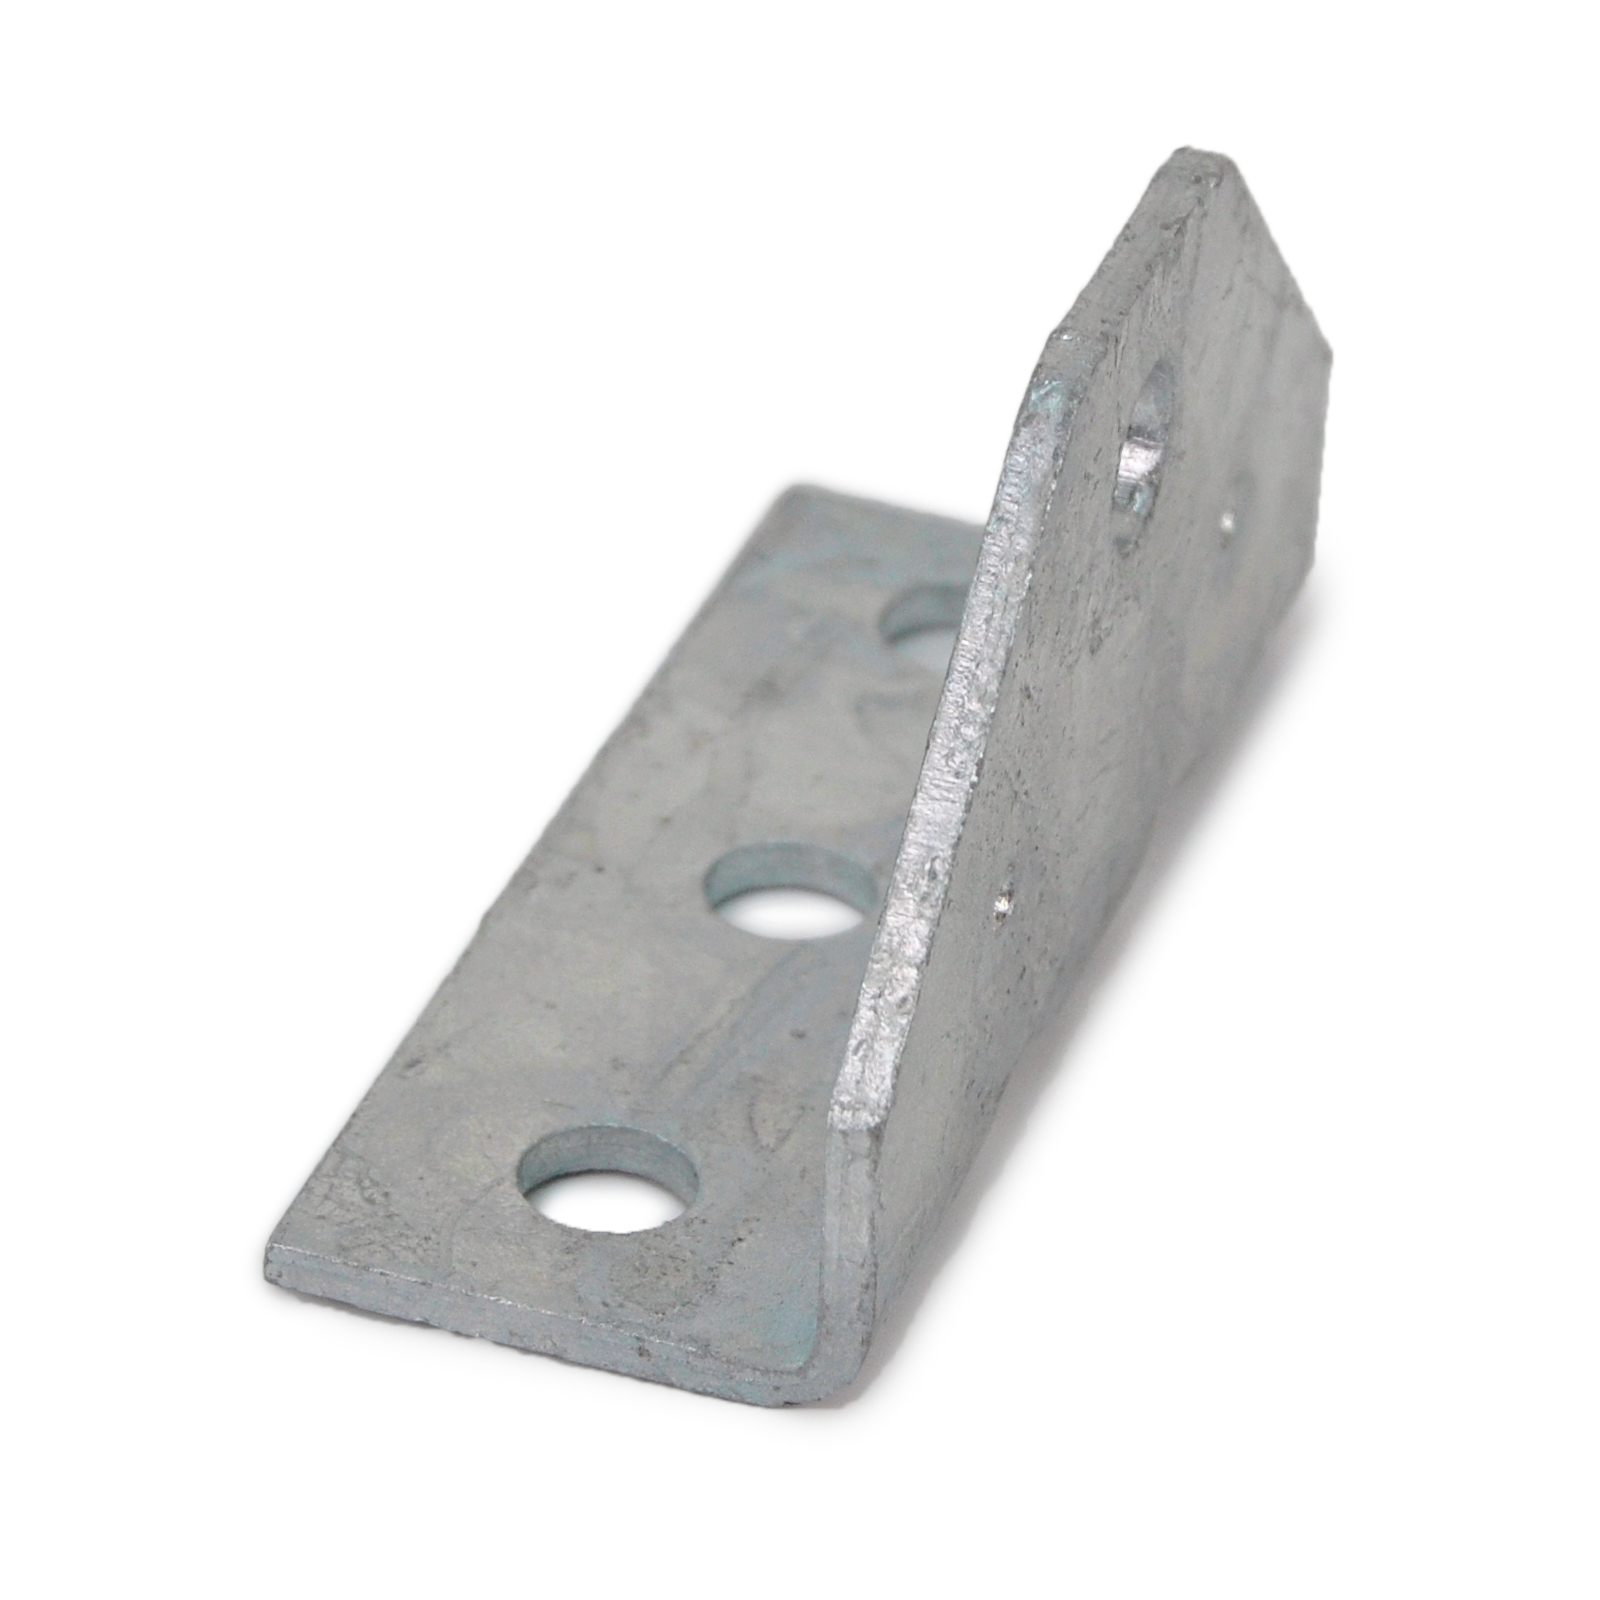 8 Boat Trailer Top Angle Galvanized Swivel Top Angle Bracket for Bunk Brackets